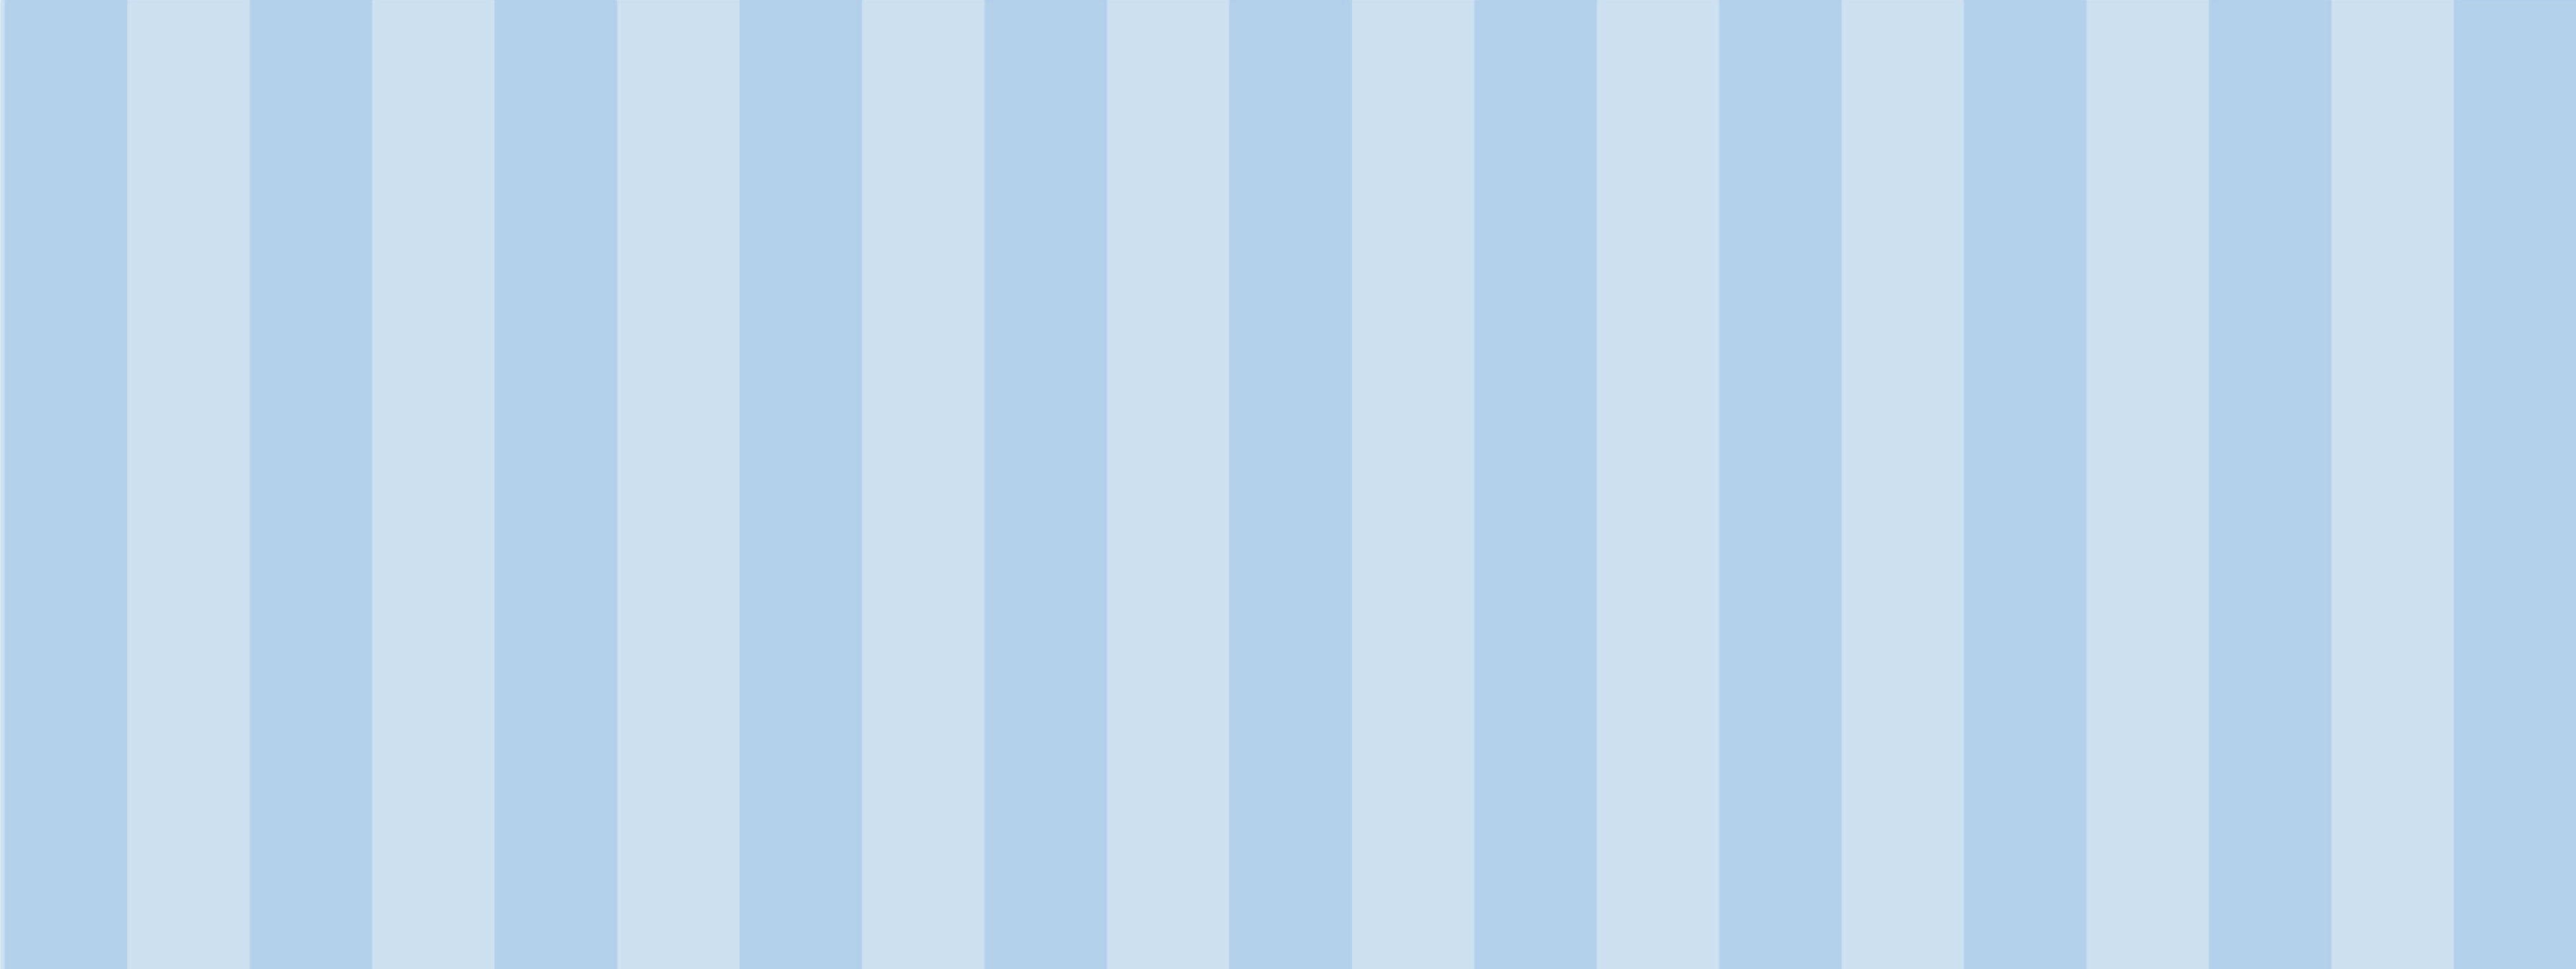 Blue And Yellow Striped Wallpaper: Free Wallpaper Designs For Your Graphic Projects